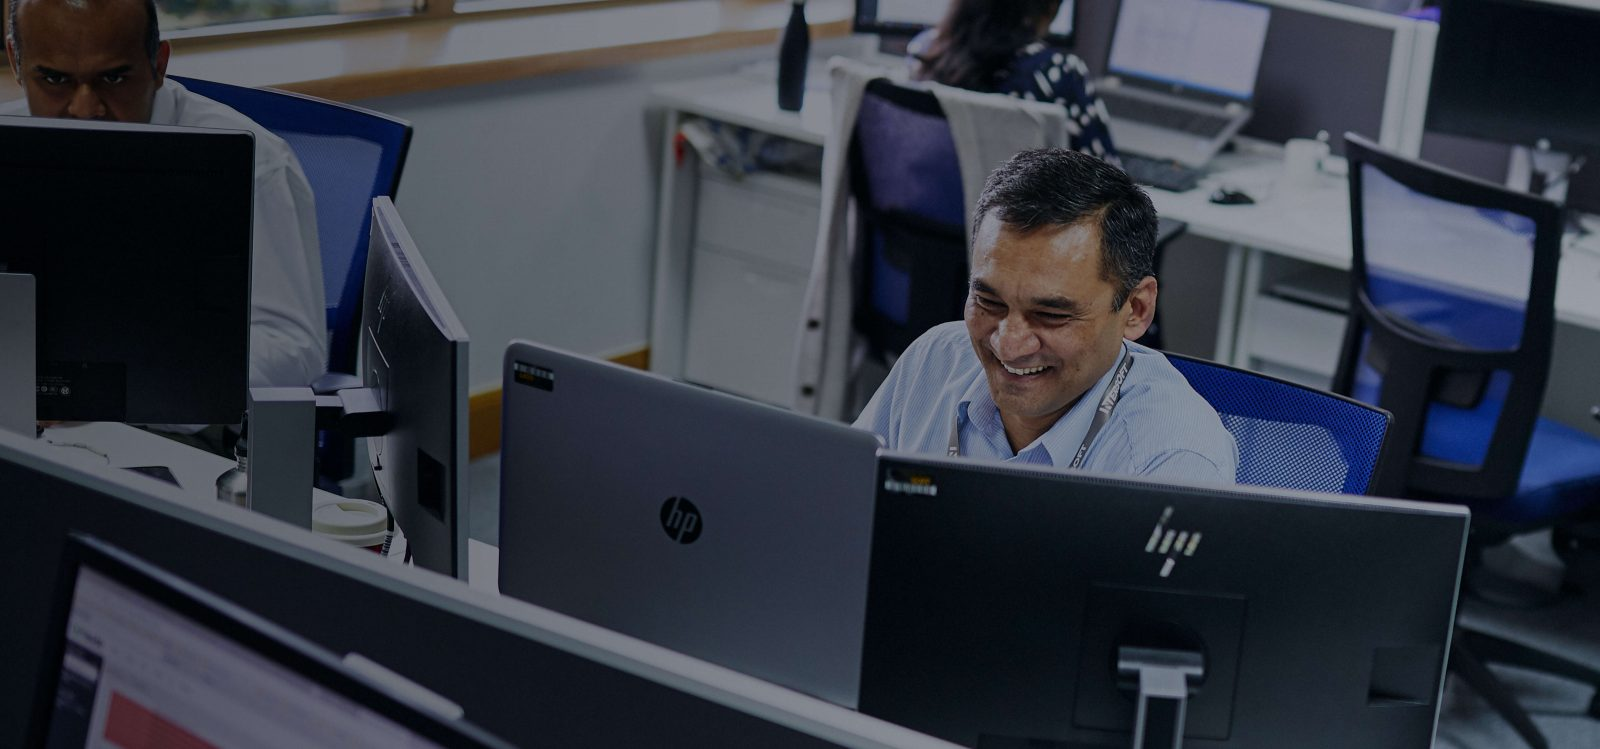 Happy man working at Intersoft